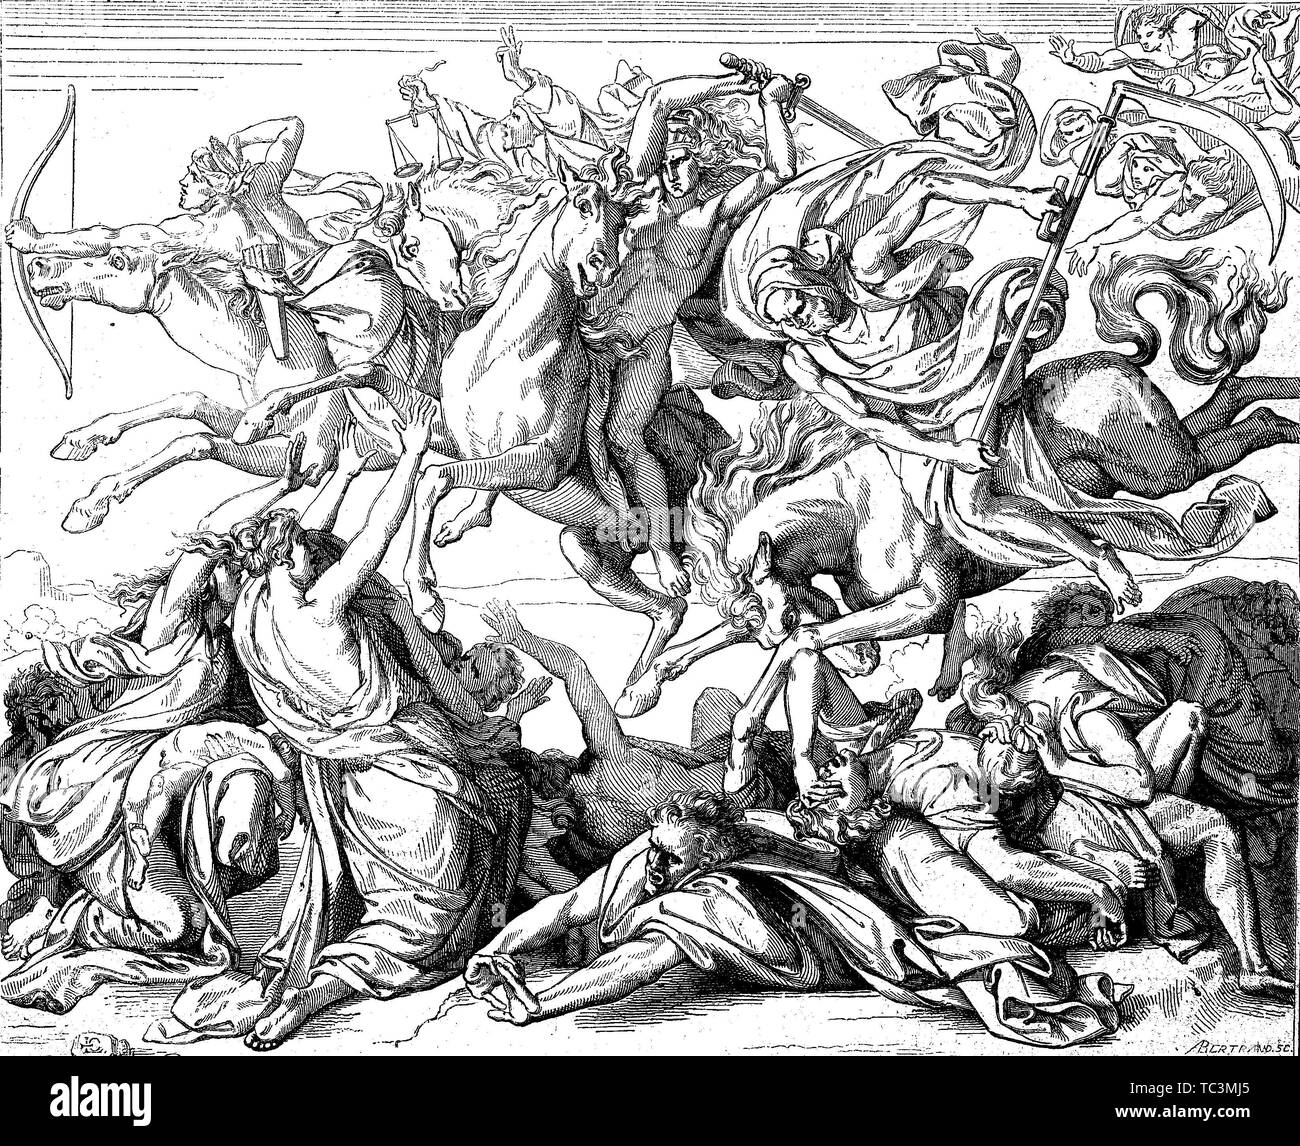 The four apocalyptic horsemen, messengers of the approaching apocalypse, the Last Judgement, 1880, historical woodcut, France - Stock Image